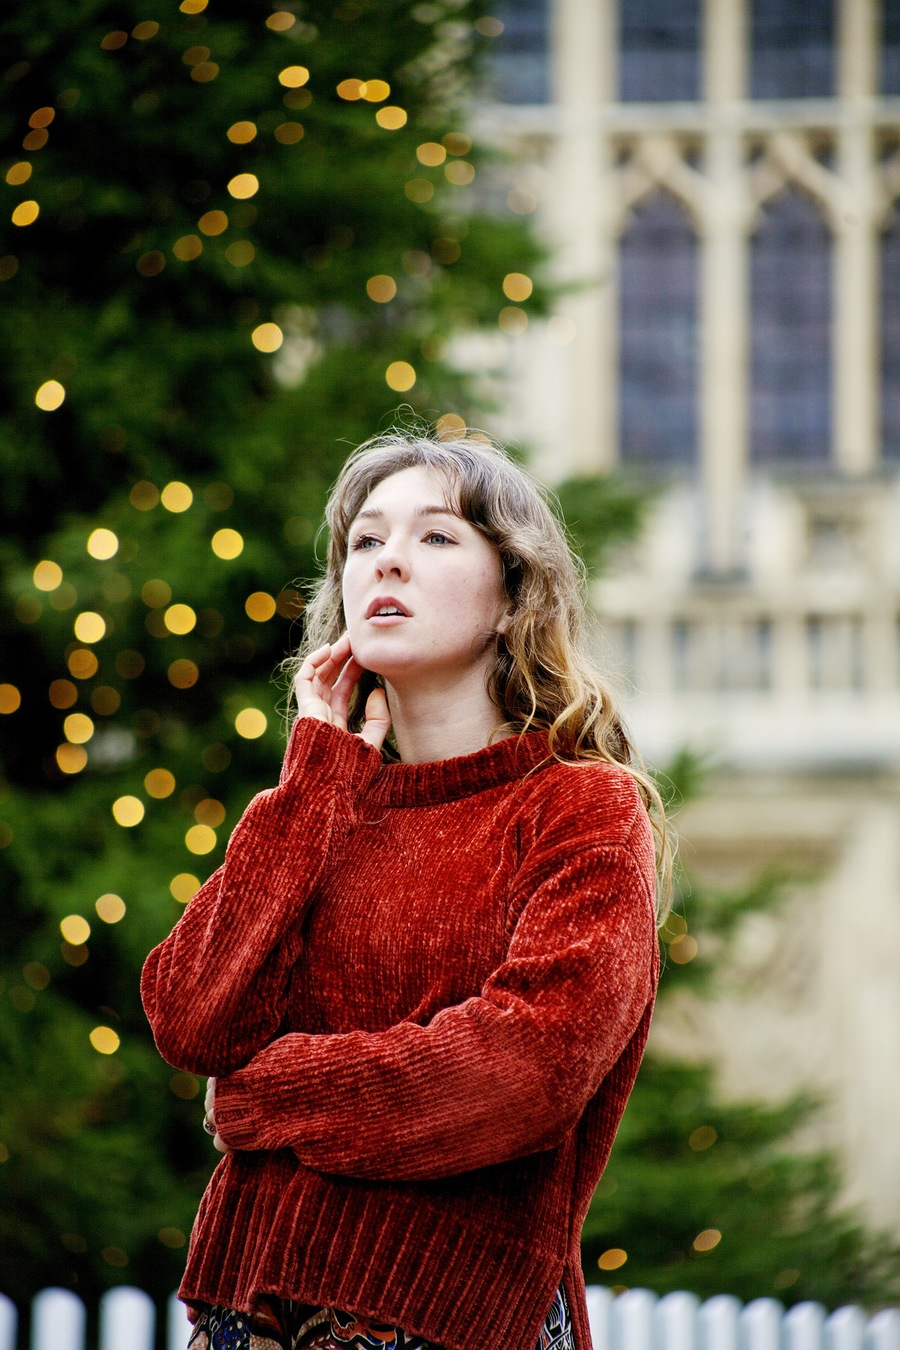 Winter Beauty / Photography by Rich Imagery, Model Ella Ray / Uploaded 6th December 2020 @ 02:25 PM